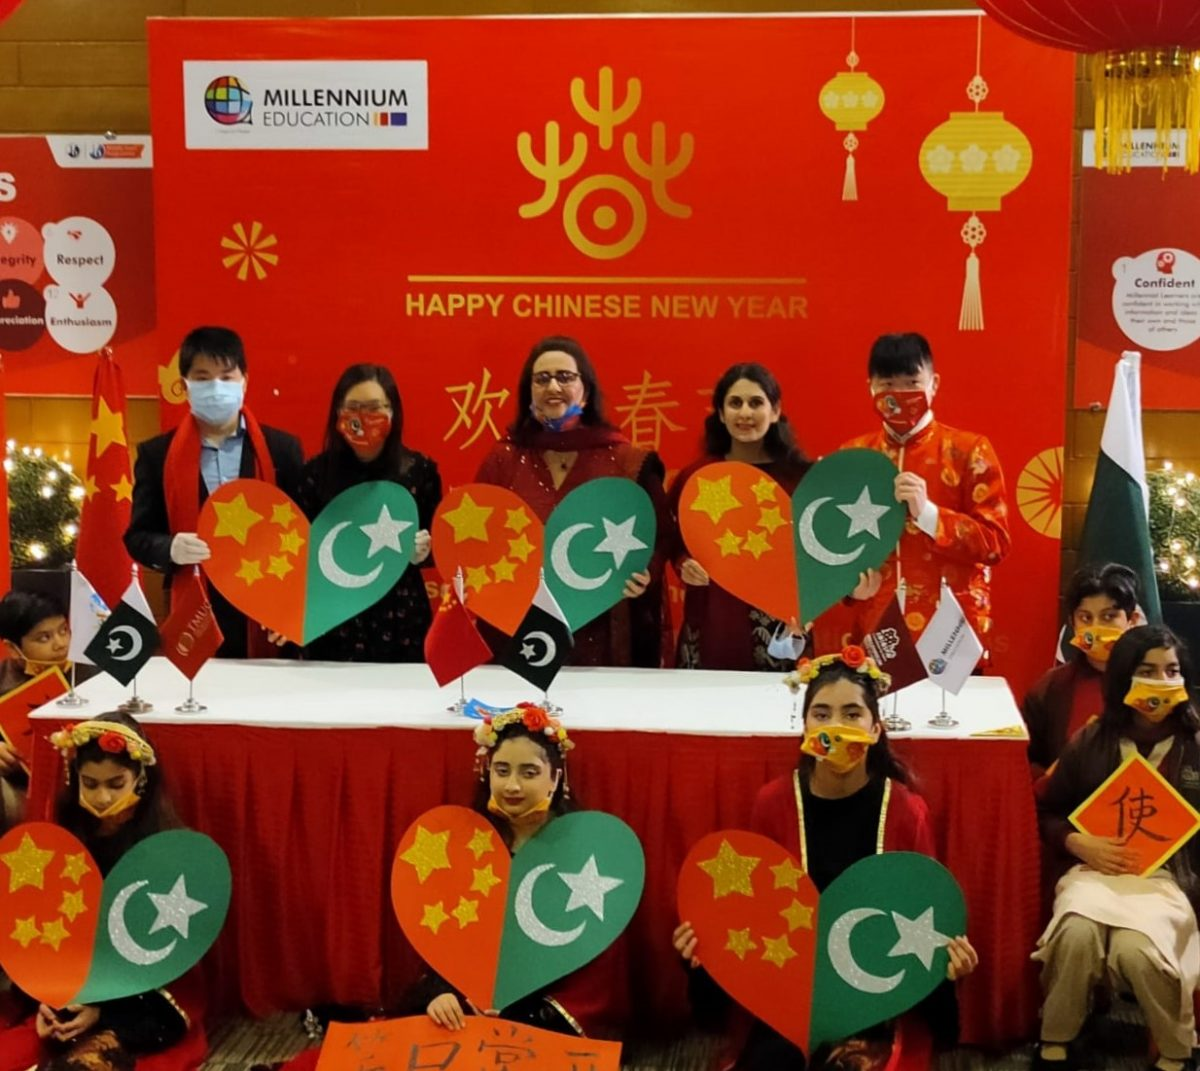 Virtual Chinese New Year Celebration at The Millennium Education (TME)